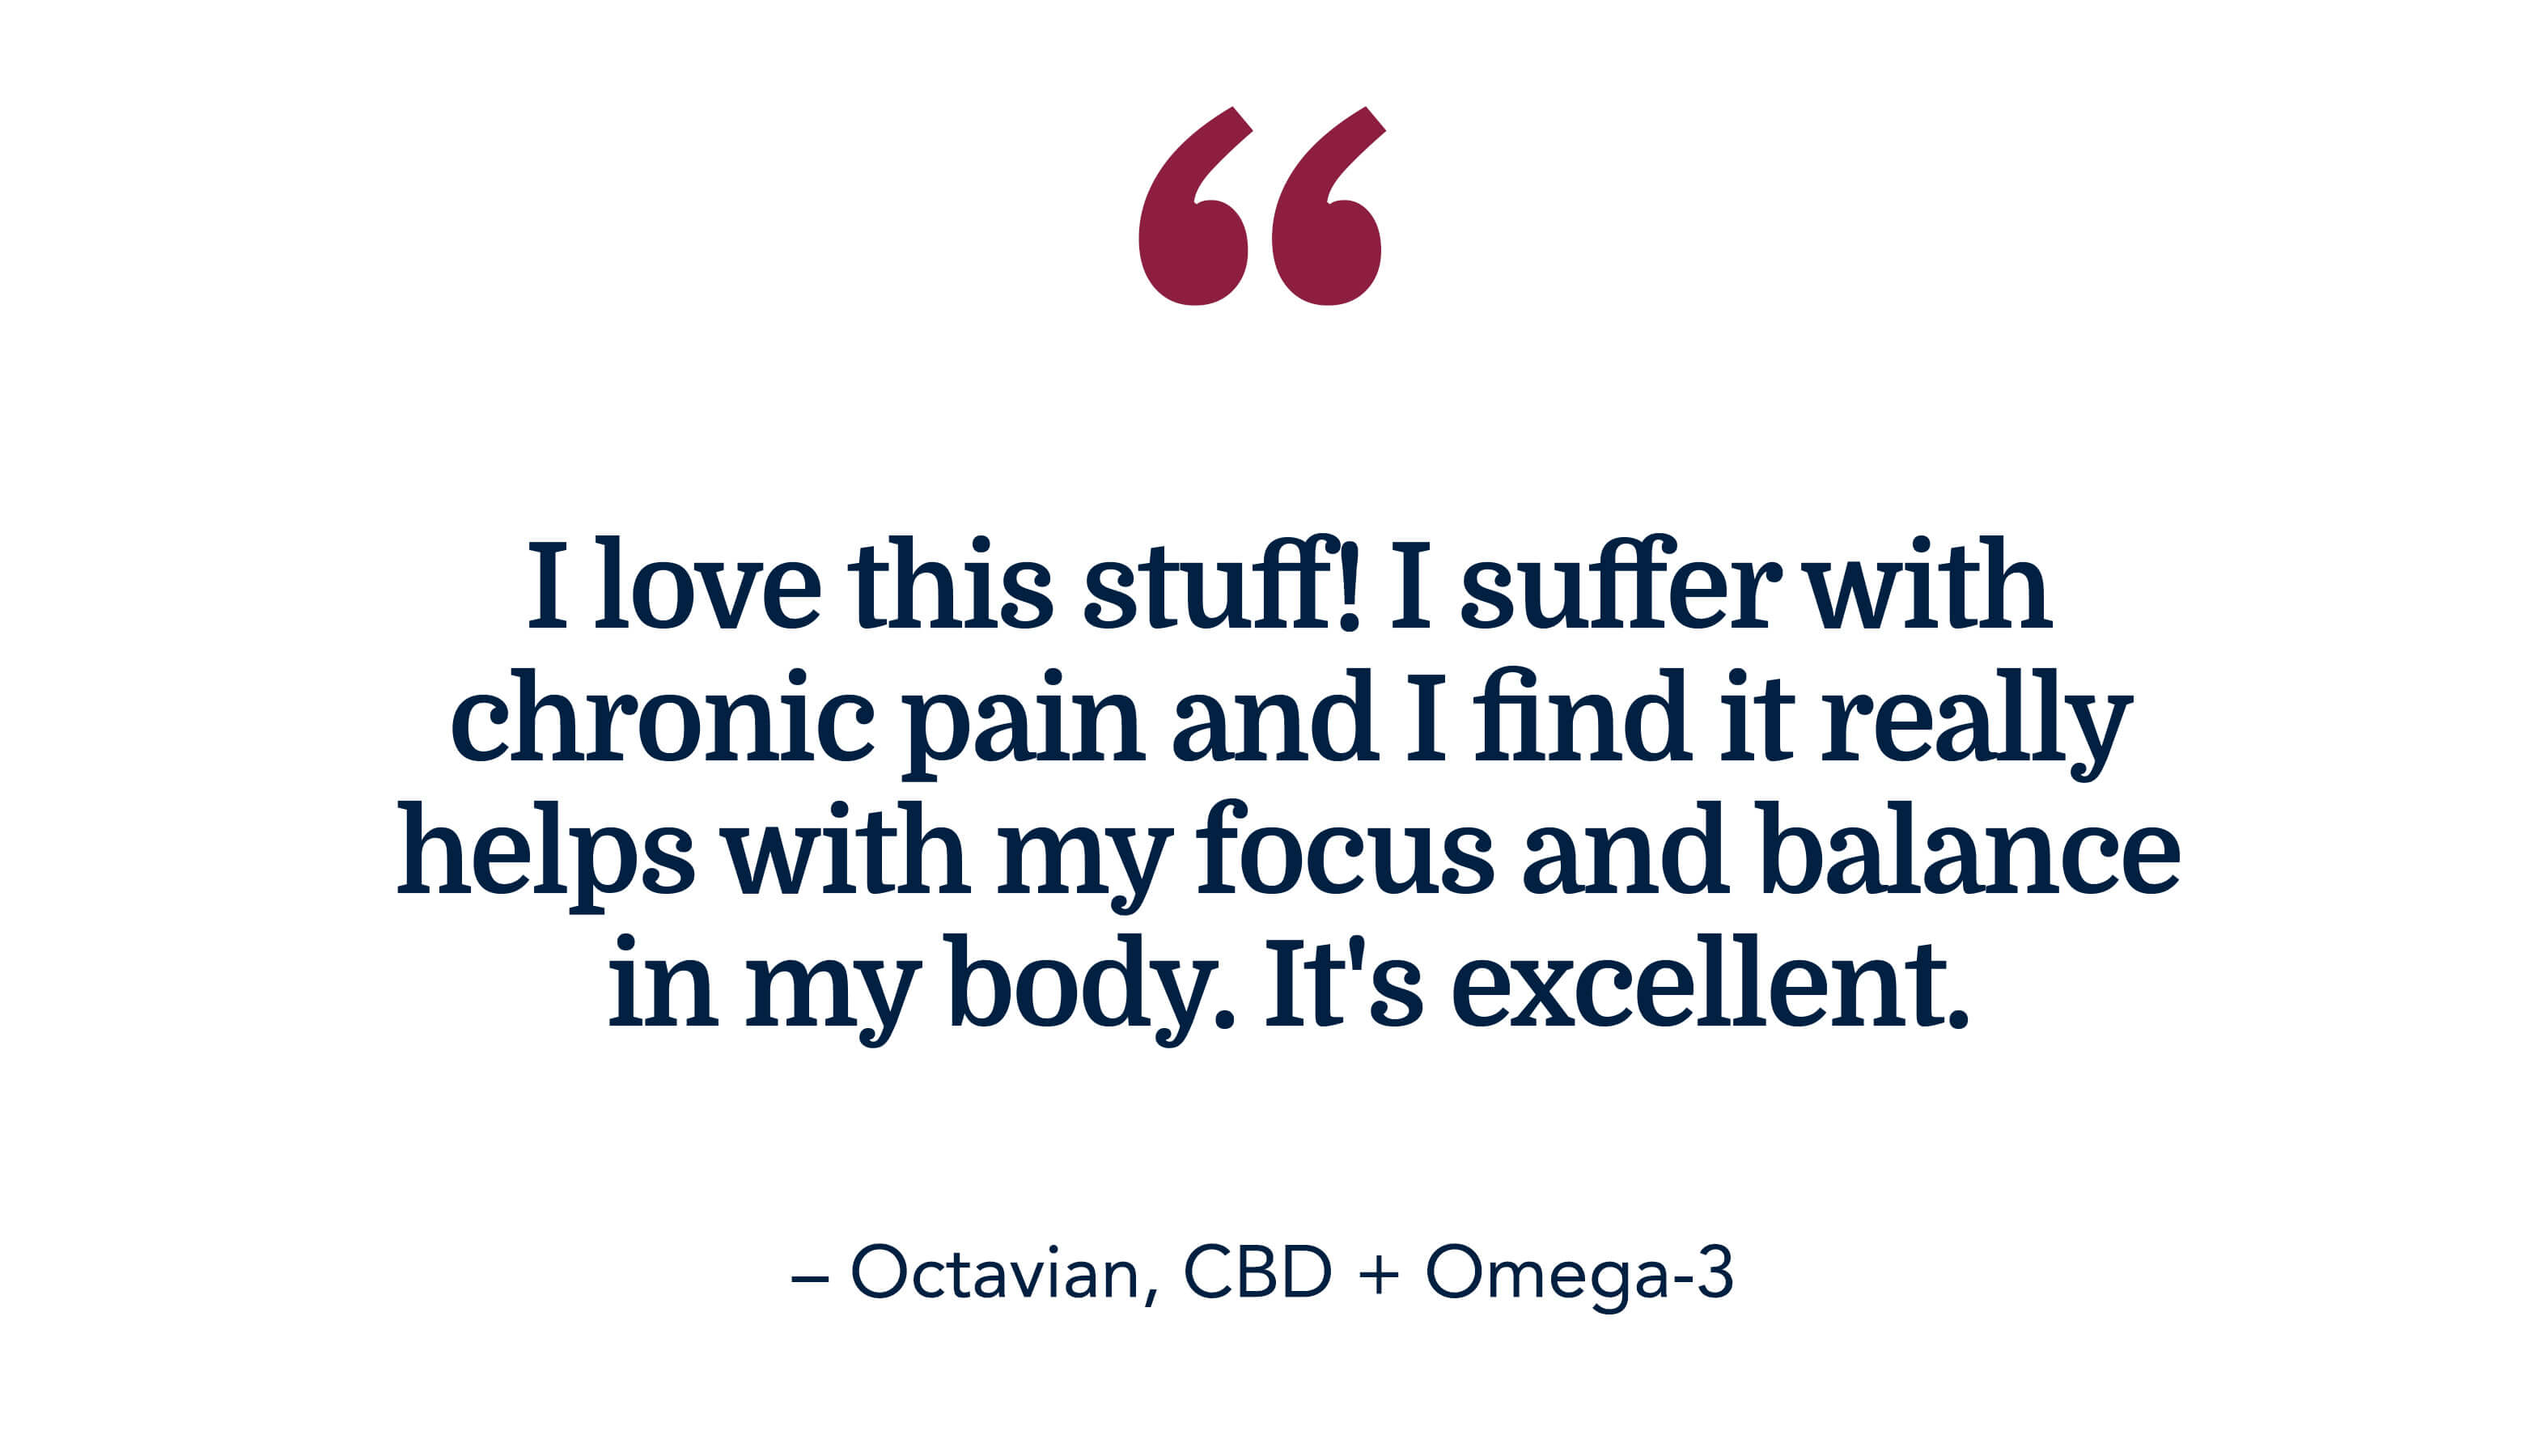 I love this stuff! I suffer with chronic pain and I find it really helps with my focus and balance in my body. It's excellent. - Octavian, CBD + Omega-3